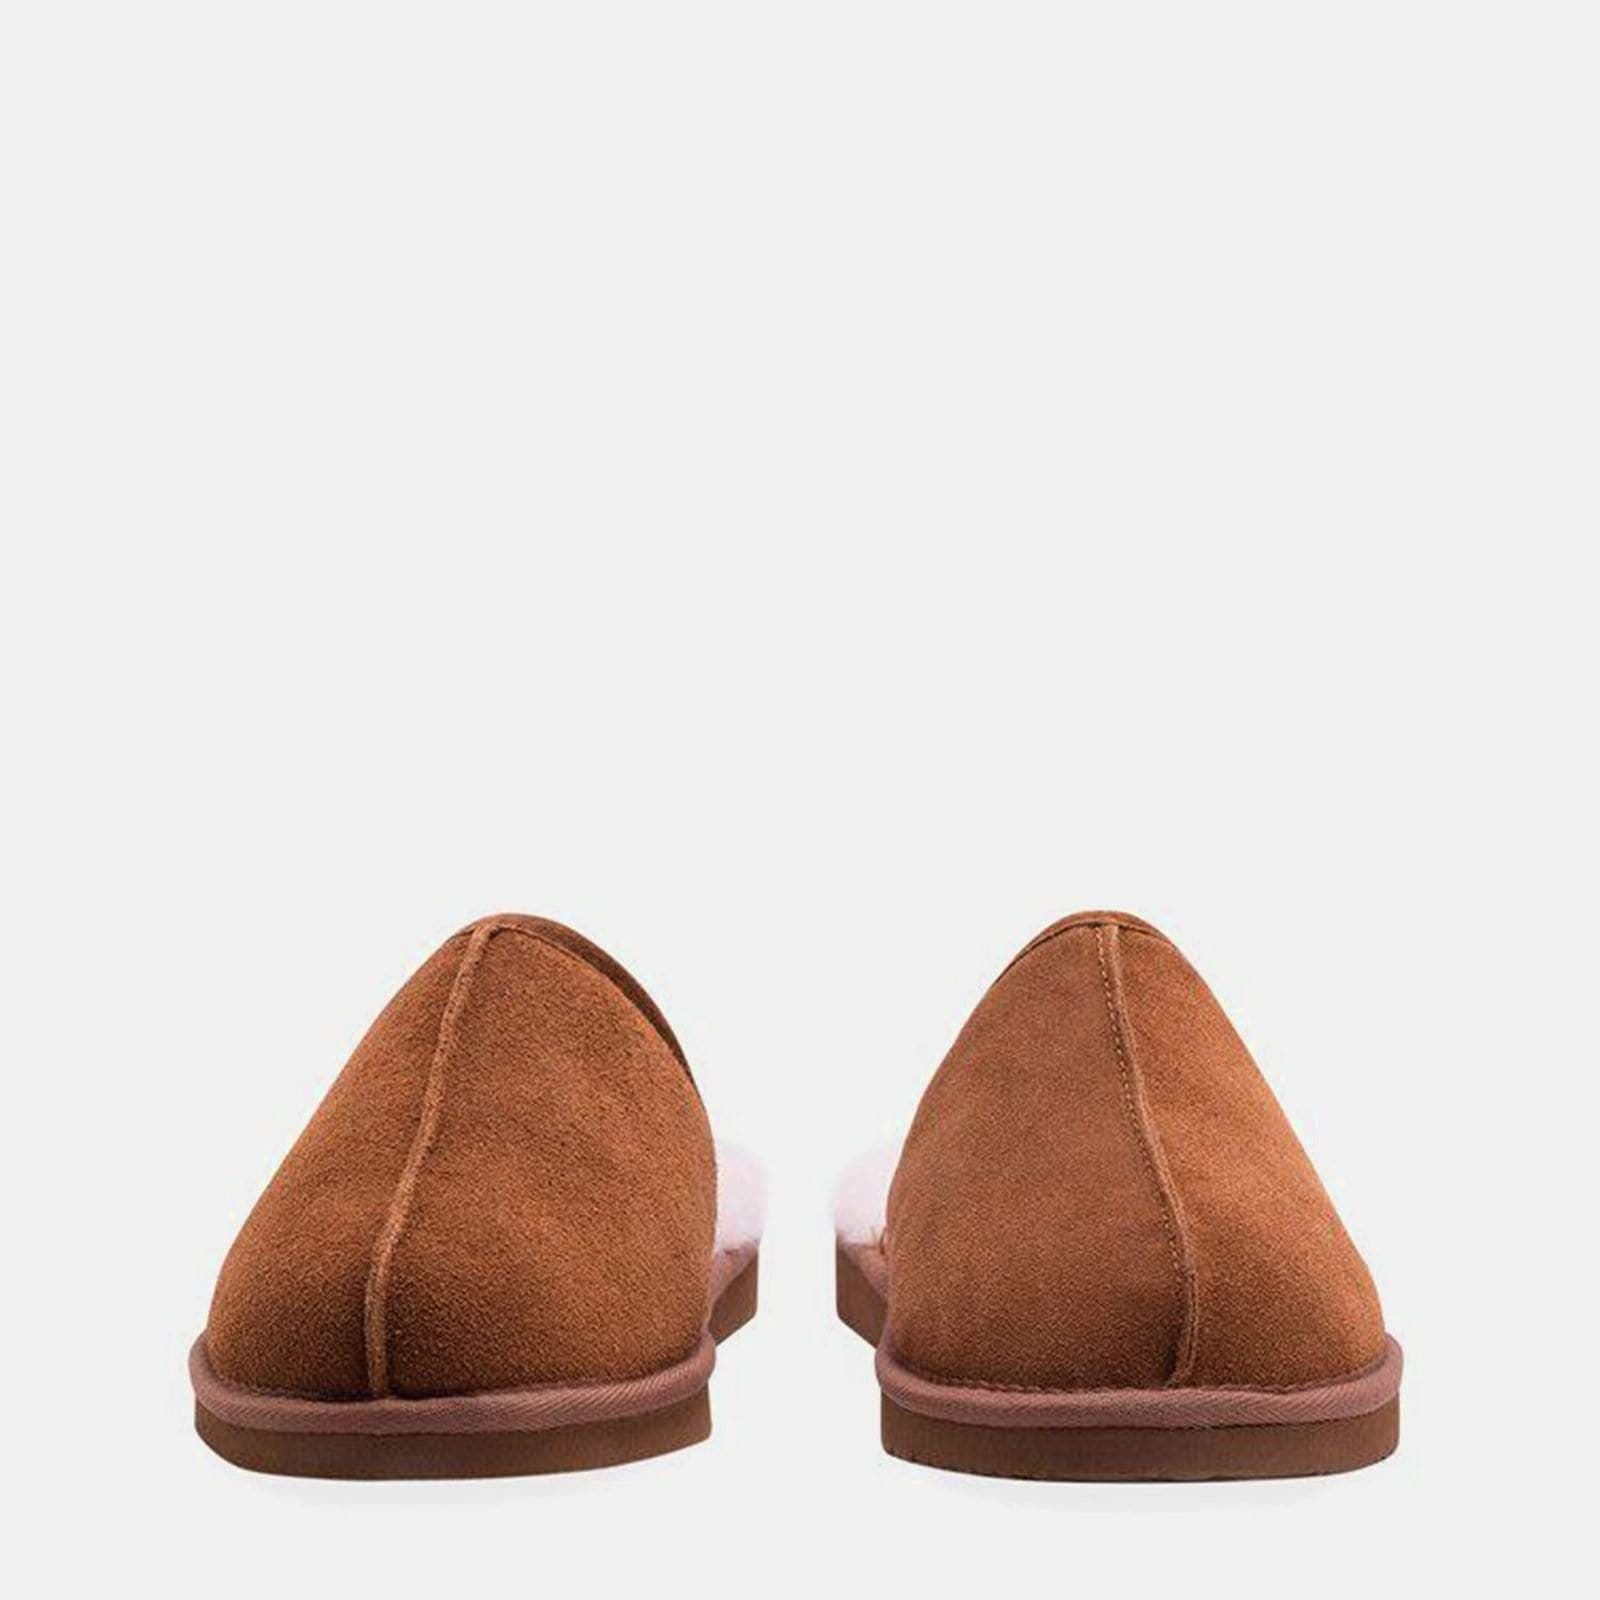 Redfoot Footwear ALLEN TAN SHEEPSKIN SLIPPERS PRE-ORDER